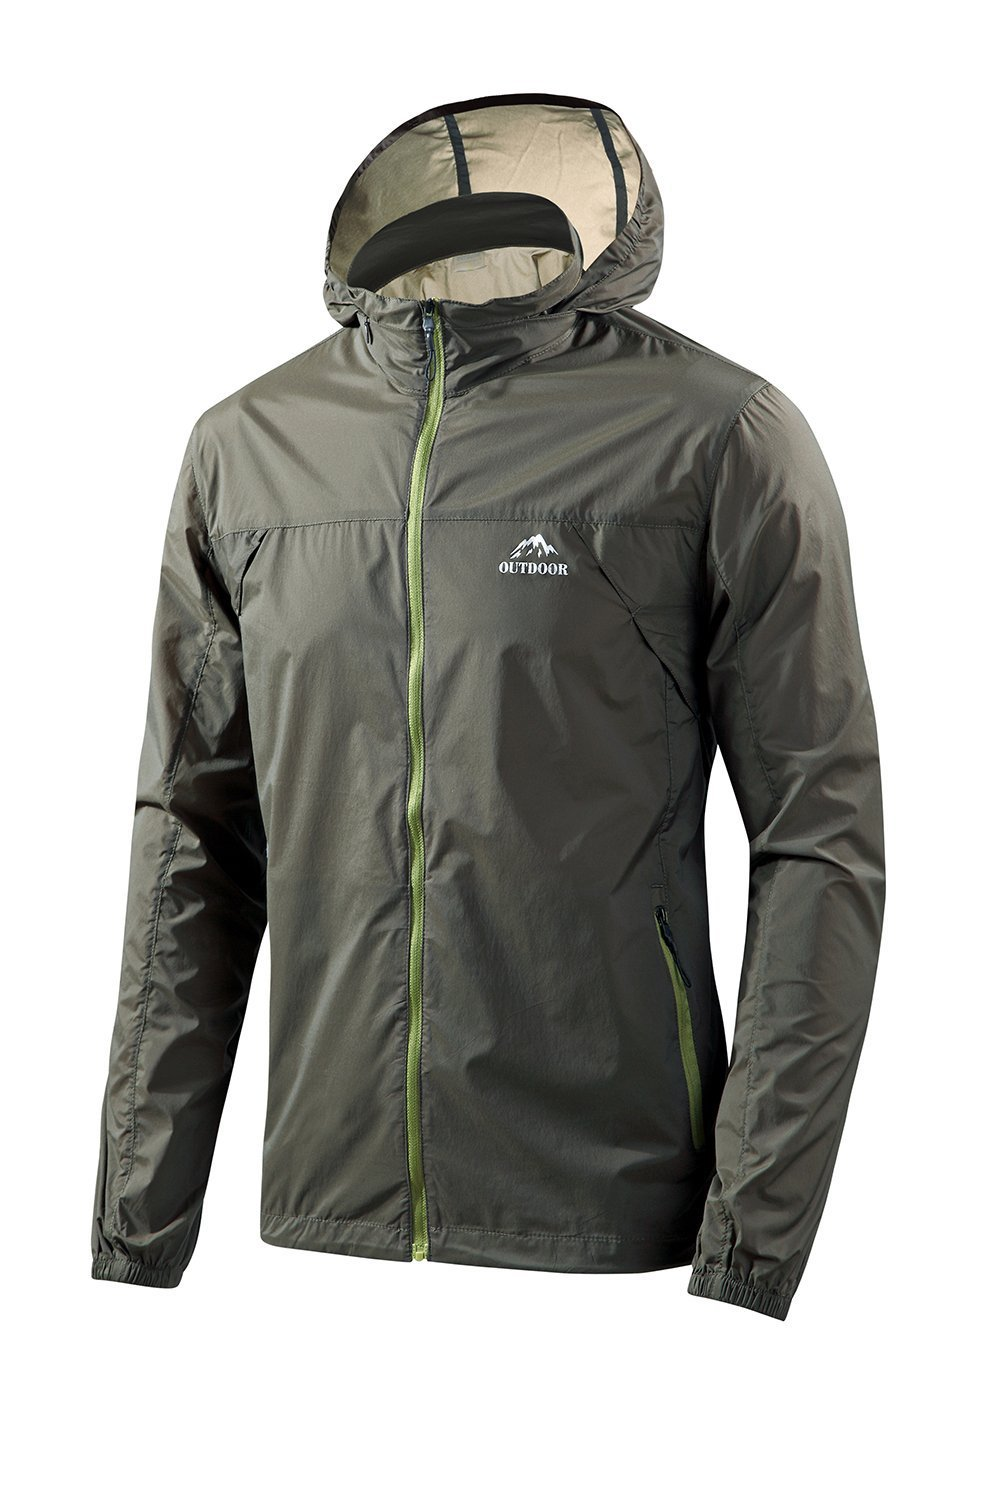 Men's UV Protection Sunscreen Jacket Quick Dry Lightweight Windproof UPF 50+ Sunscreen Clothing for Outdoor (Army Green, X-L)